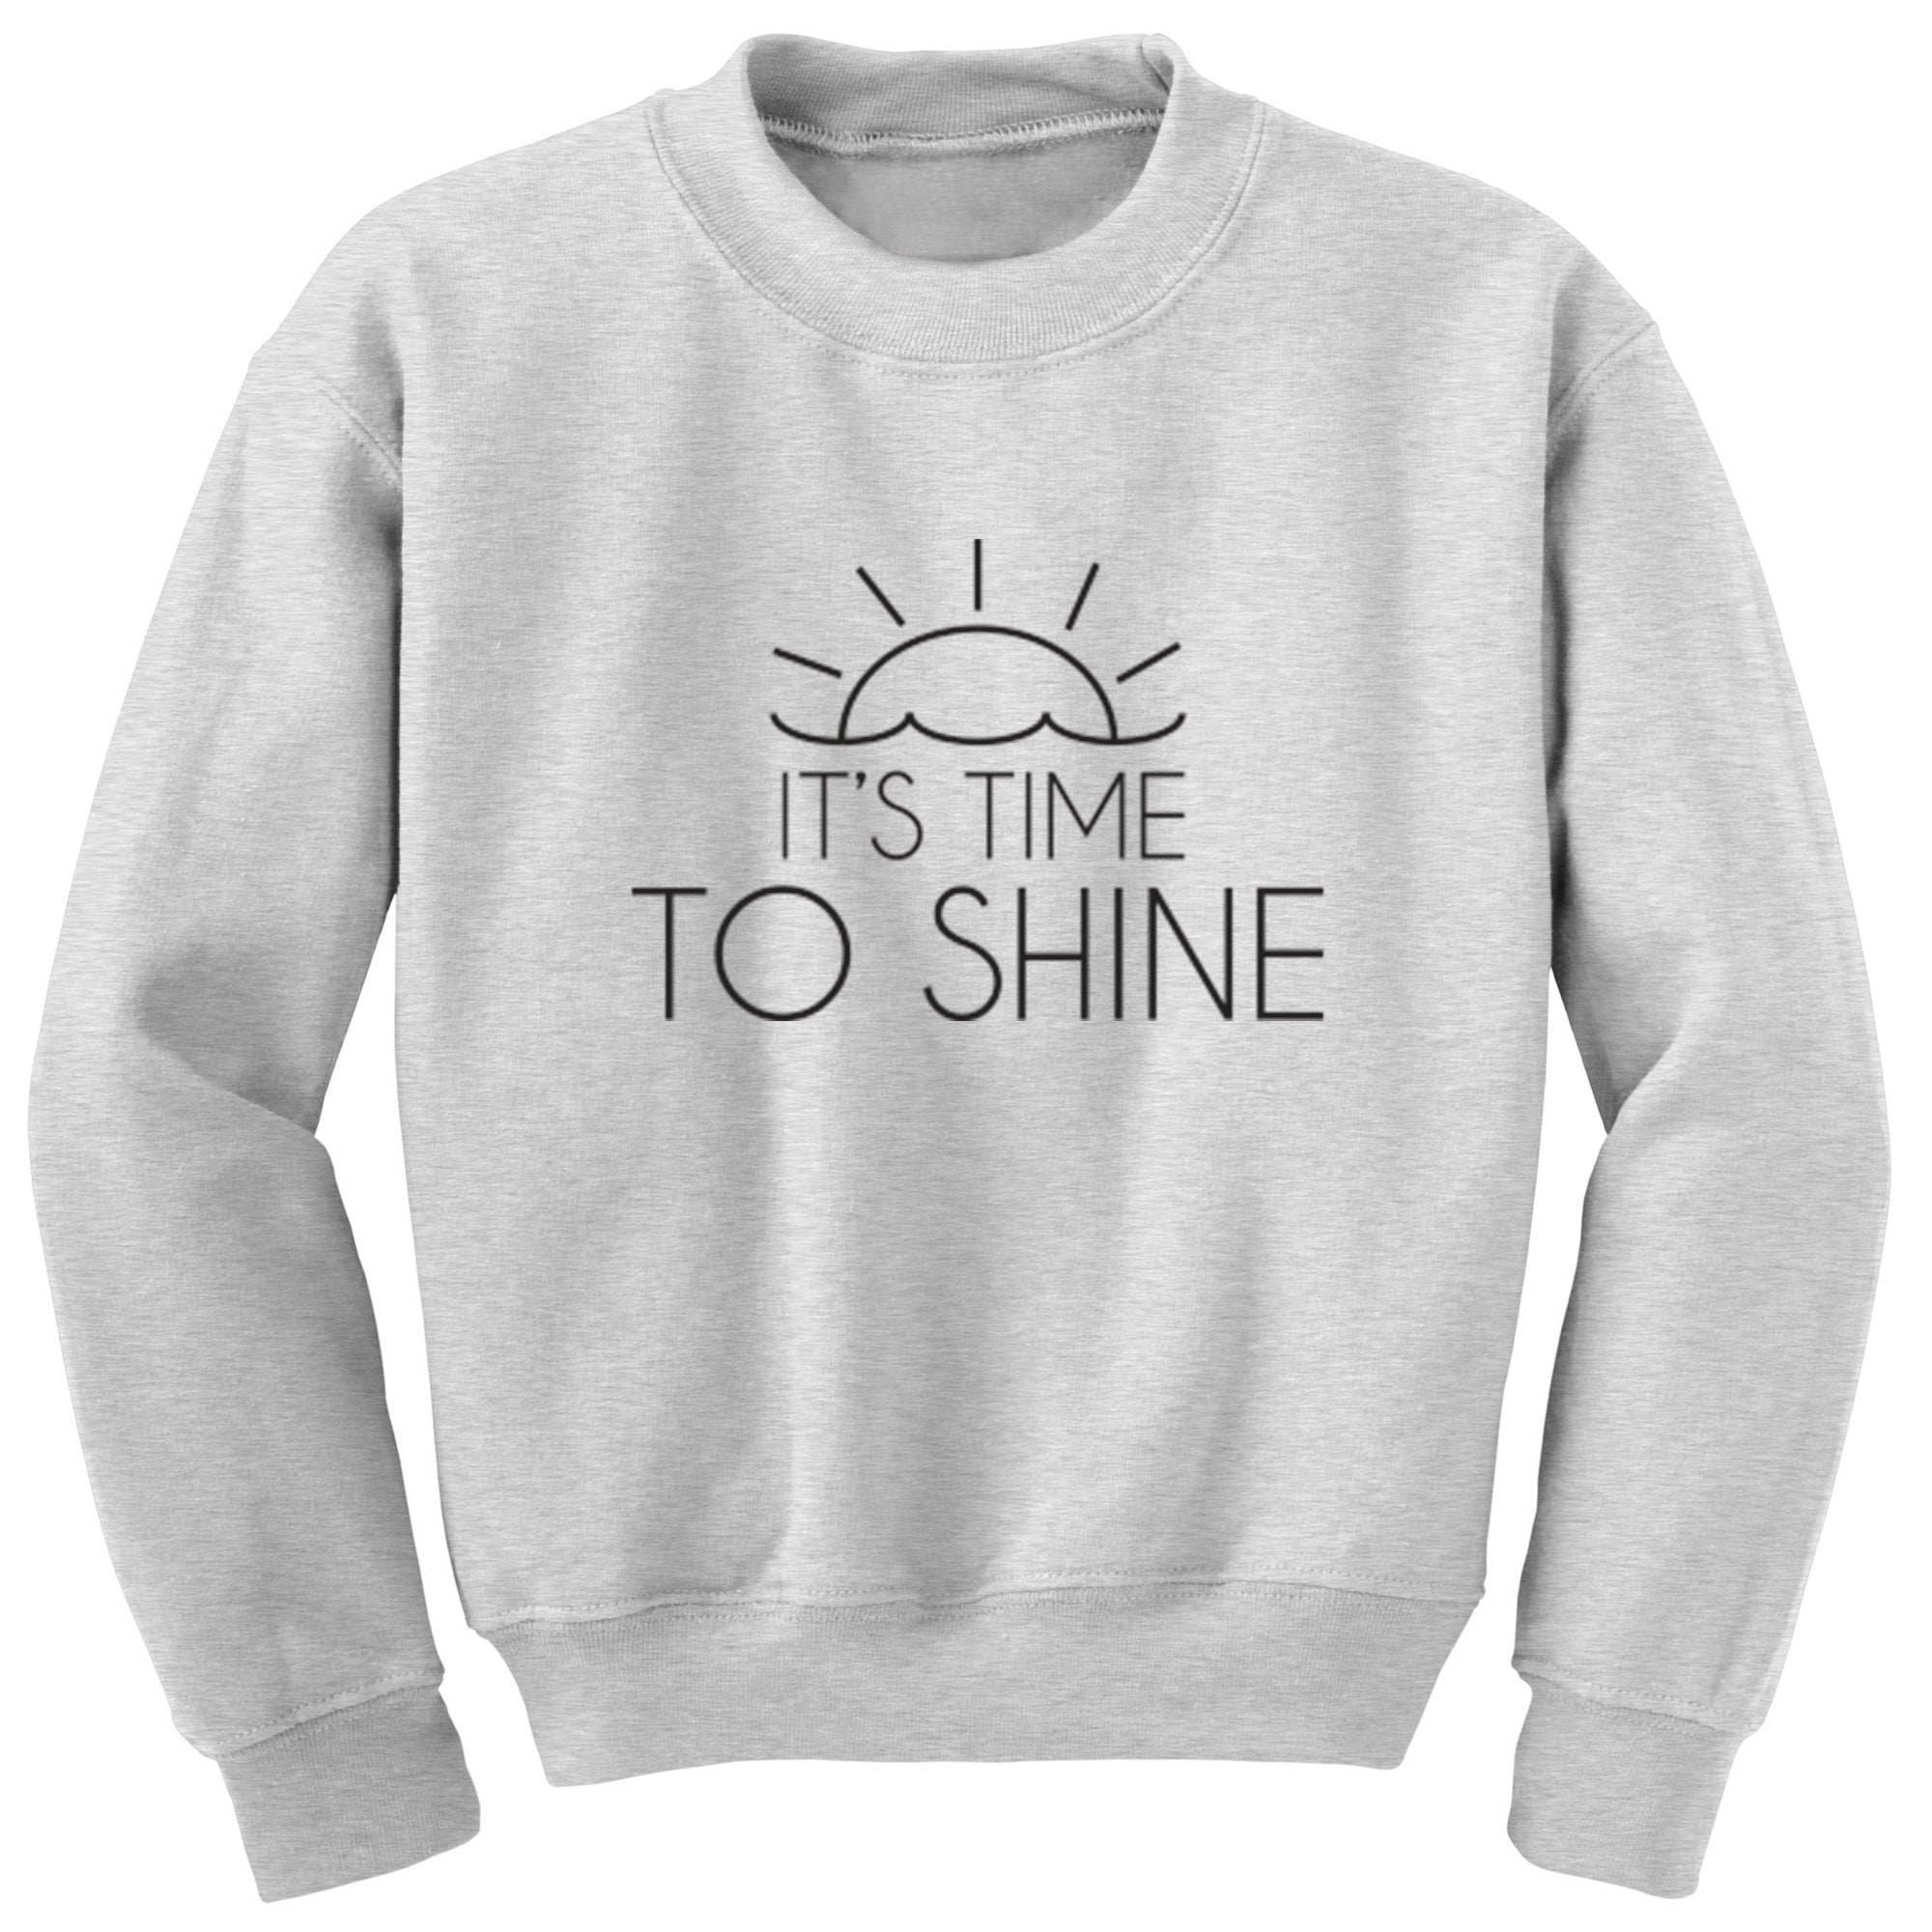 It's Time To Shine Unisex Jumper S0422 - Illustrated Identity Ltd.